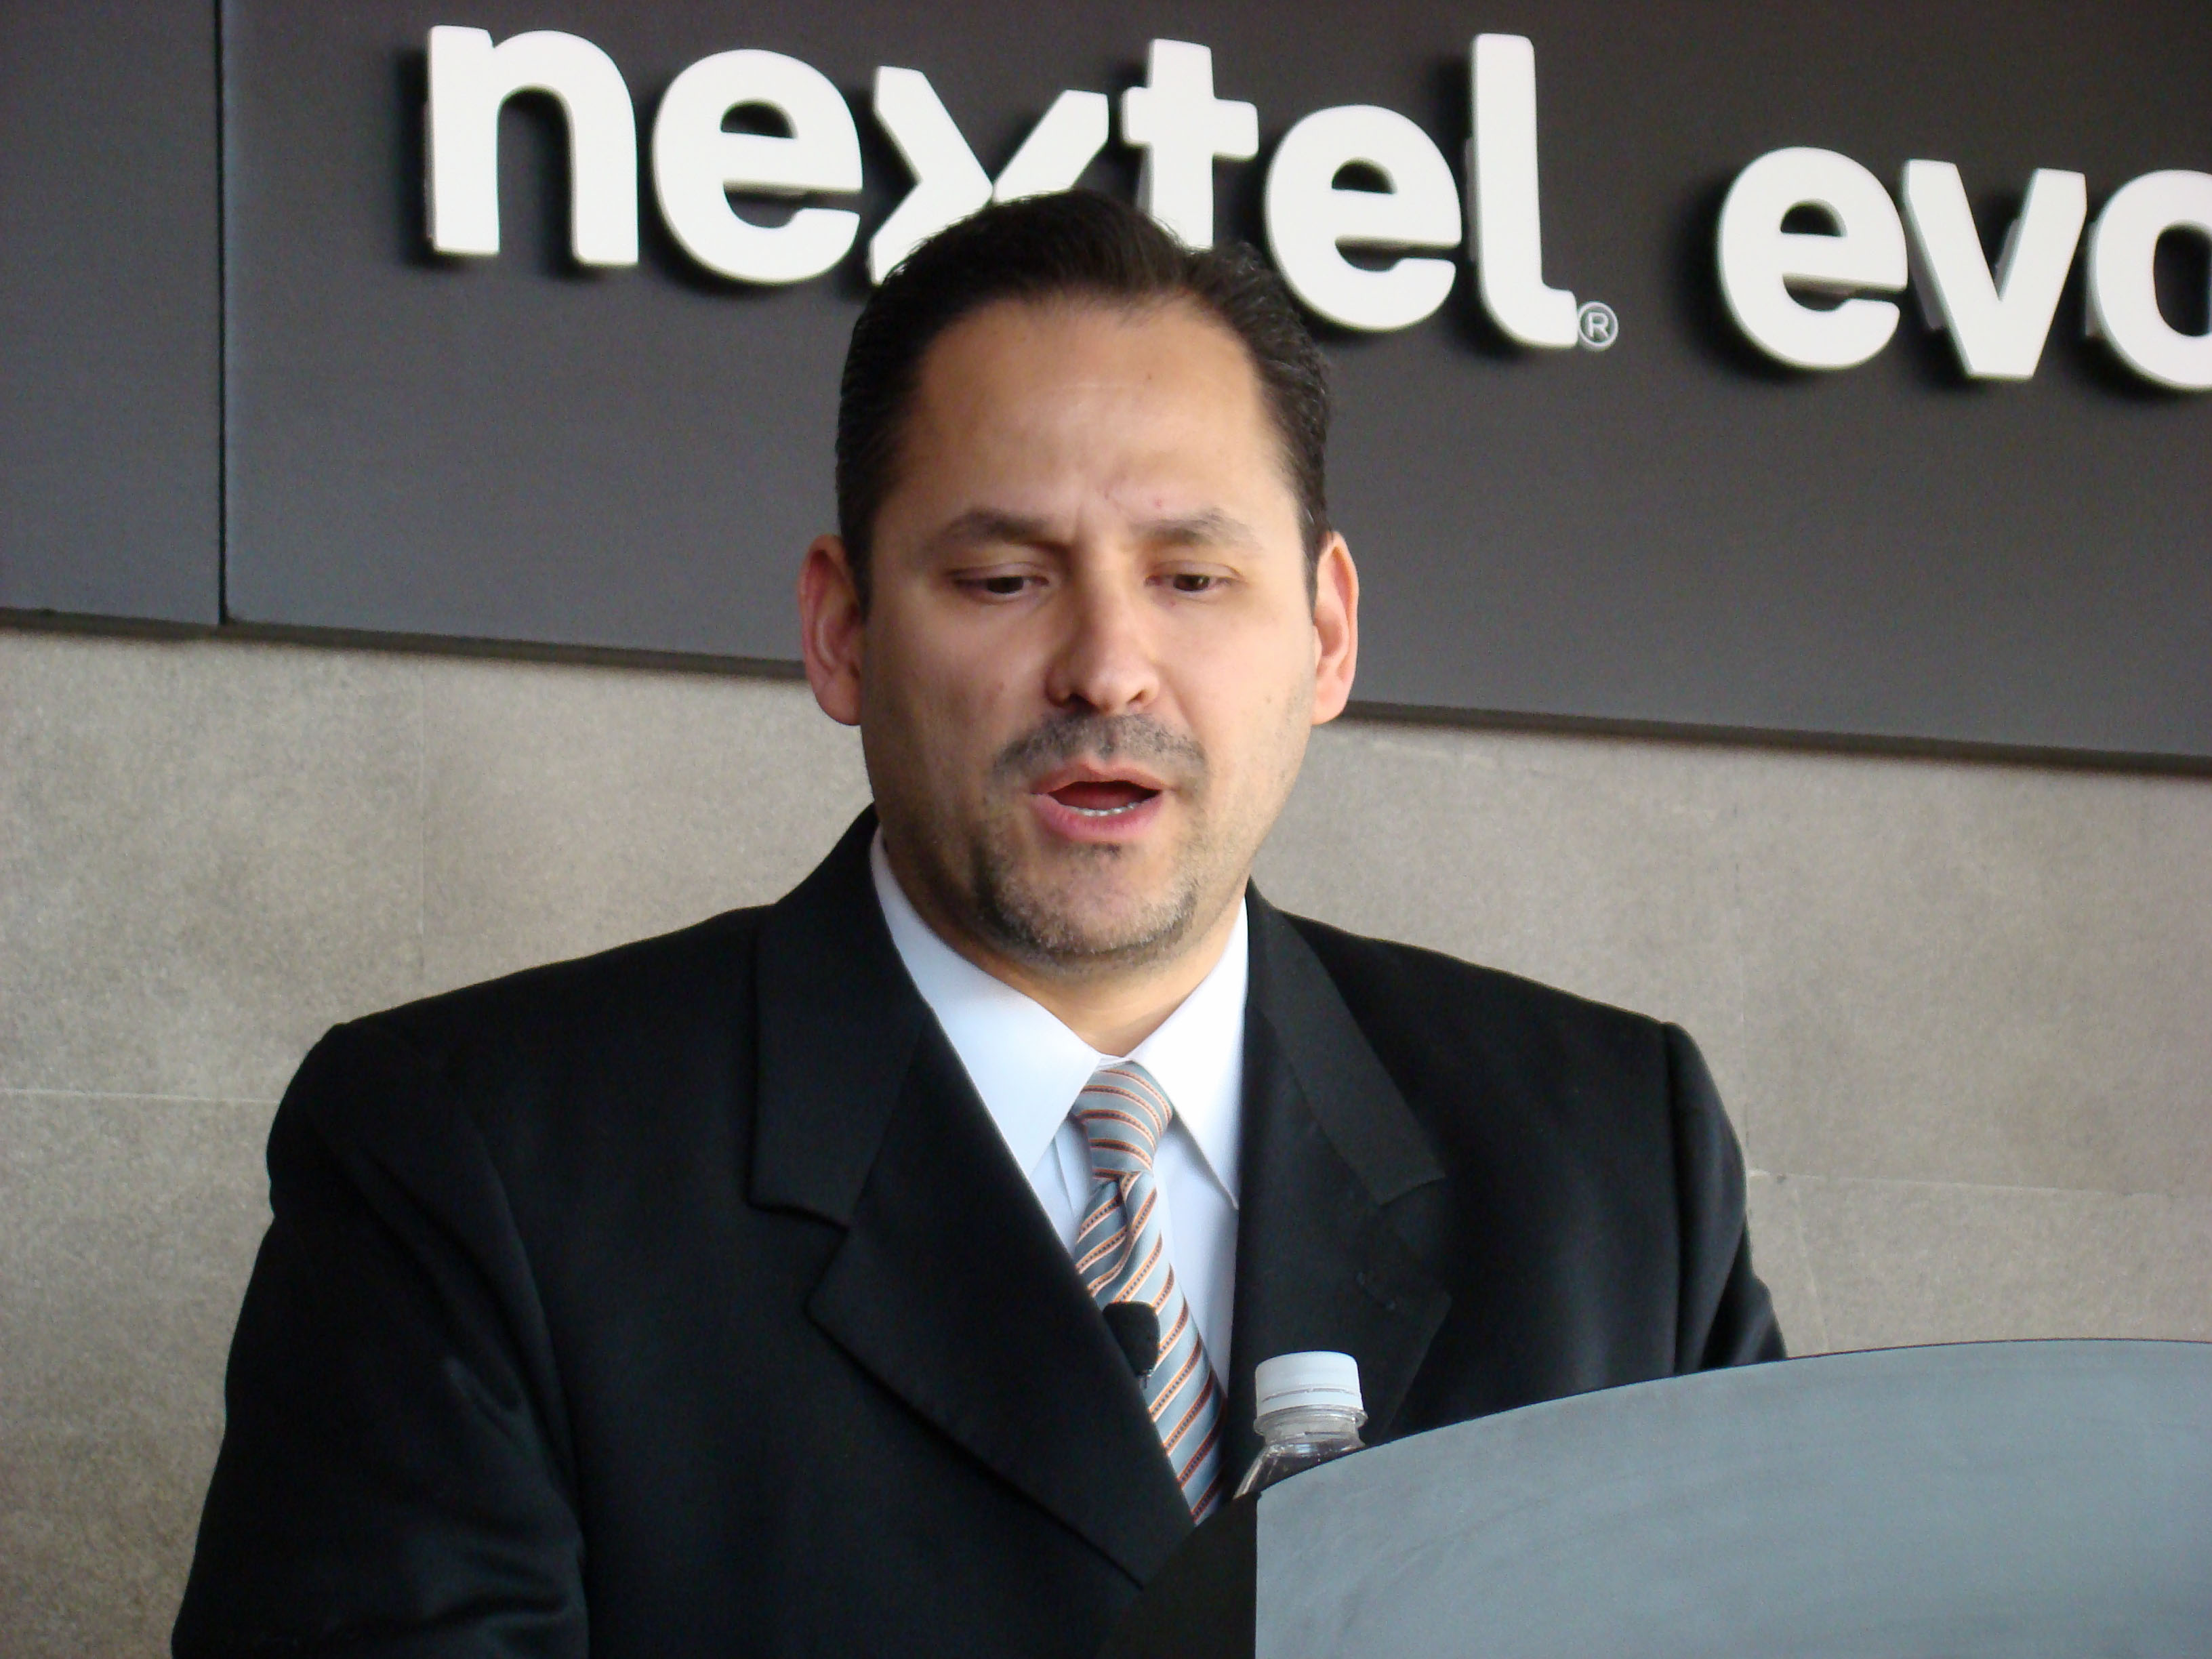 blackberry-nextel-8